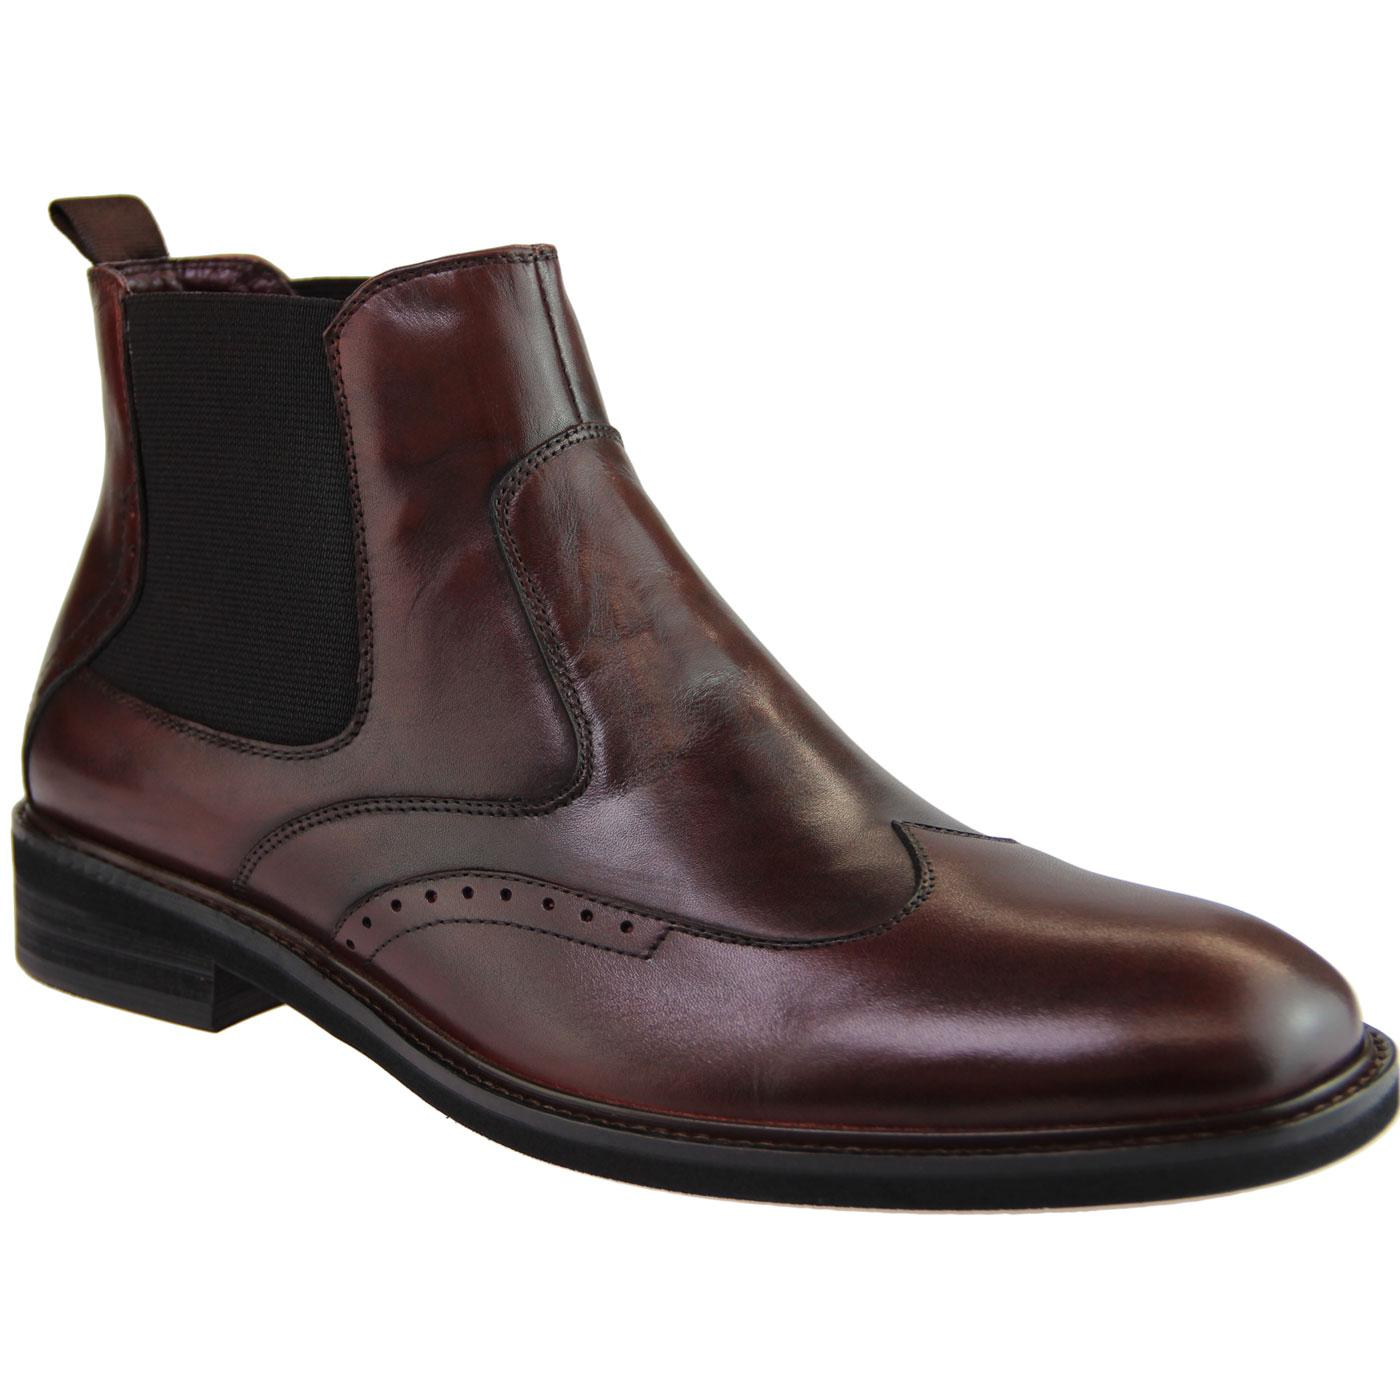 Crowley PAOLO VANDINI Mod Brogue Chelsea Boots (W)